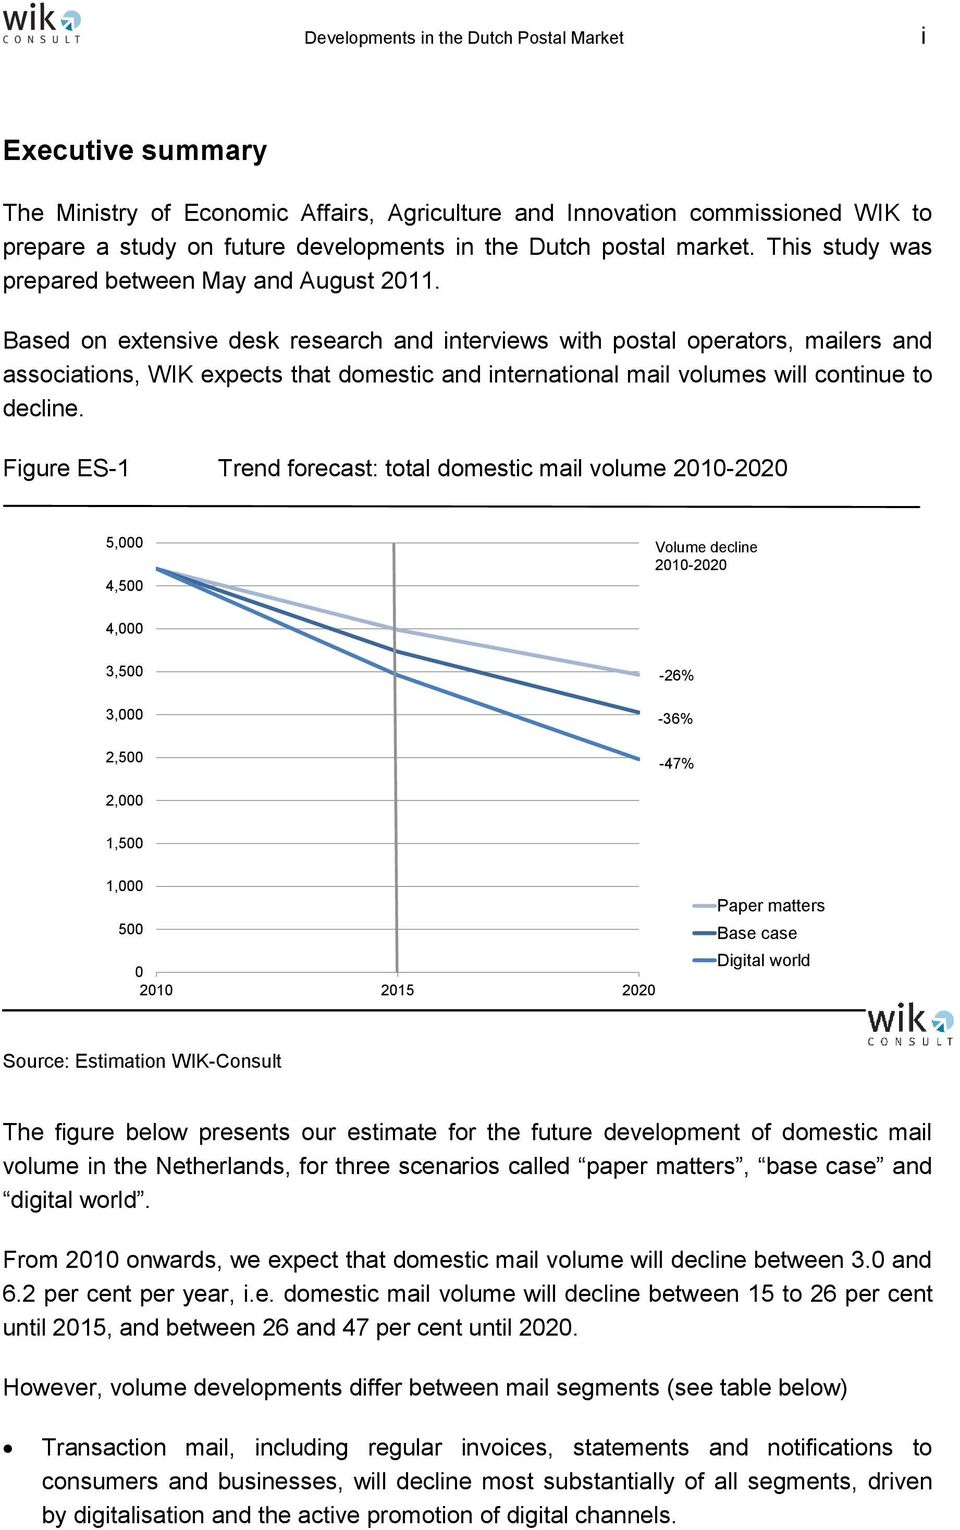 Based on extensive desk research and interviews with postal operators, mailers and associations, WIK expects that domestic and international mail volumes will continue to decline.